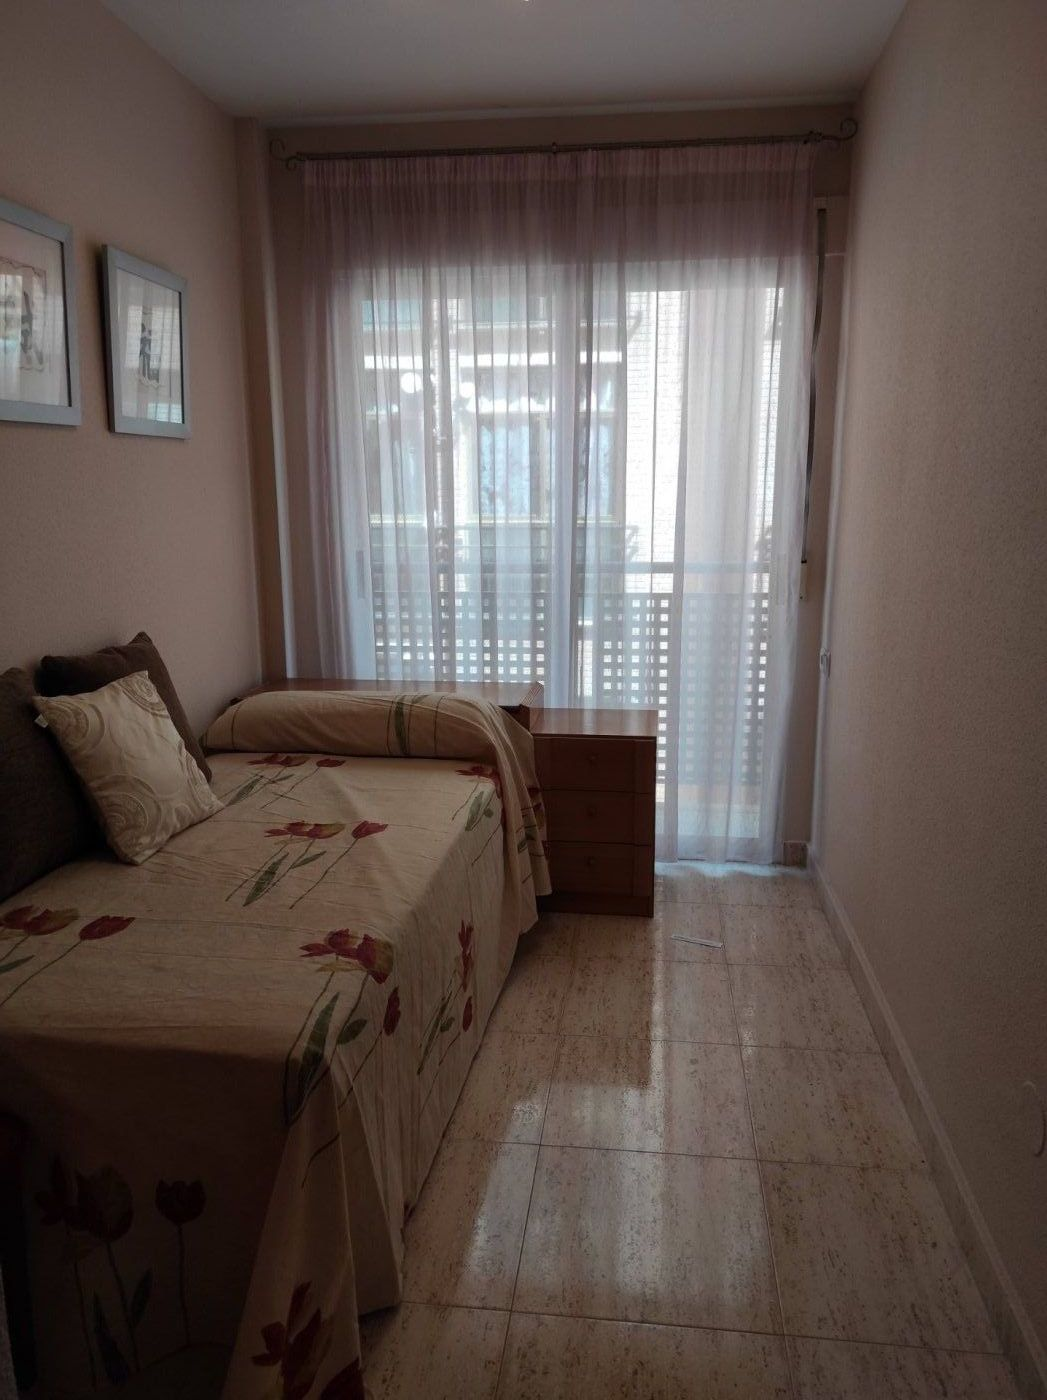 Gallery Image 5 of Flat For rent in Barrio Del Carmen, Murcia